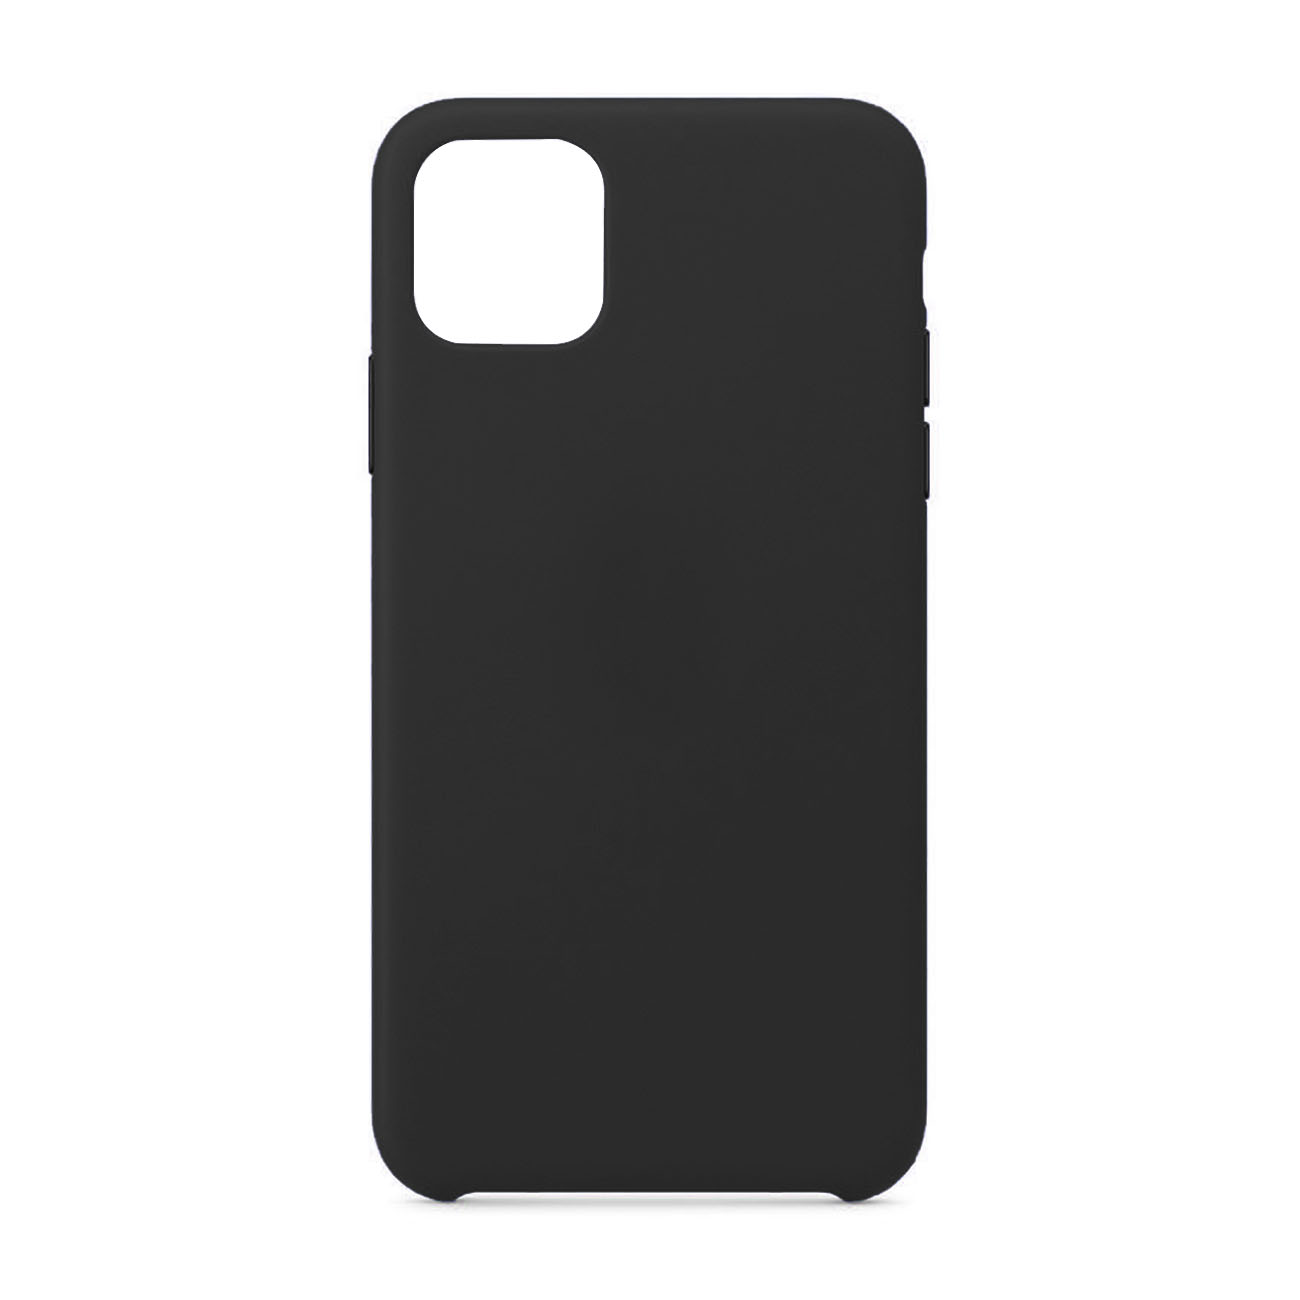 Apple iPhone 11 Gummy Cases In Black